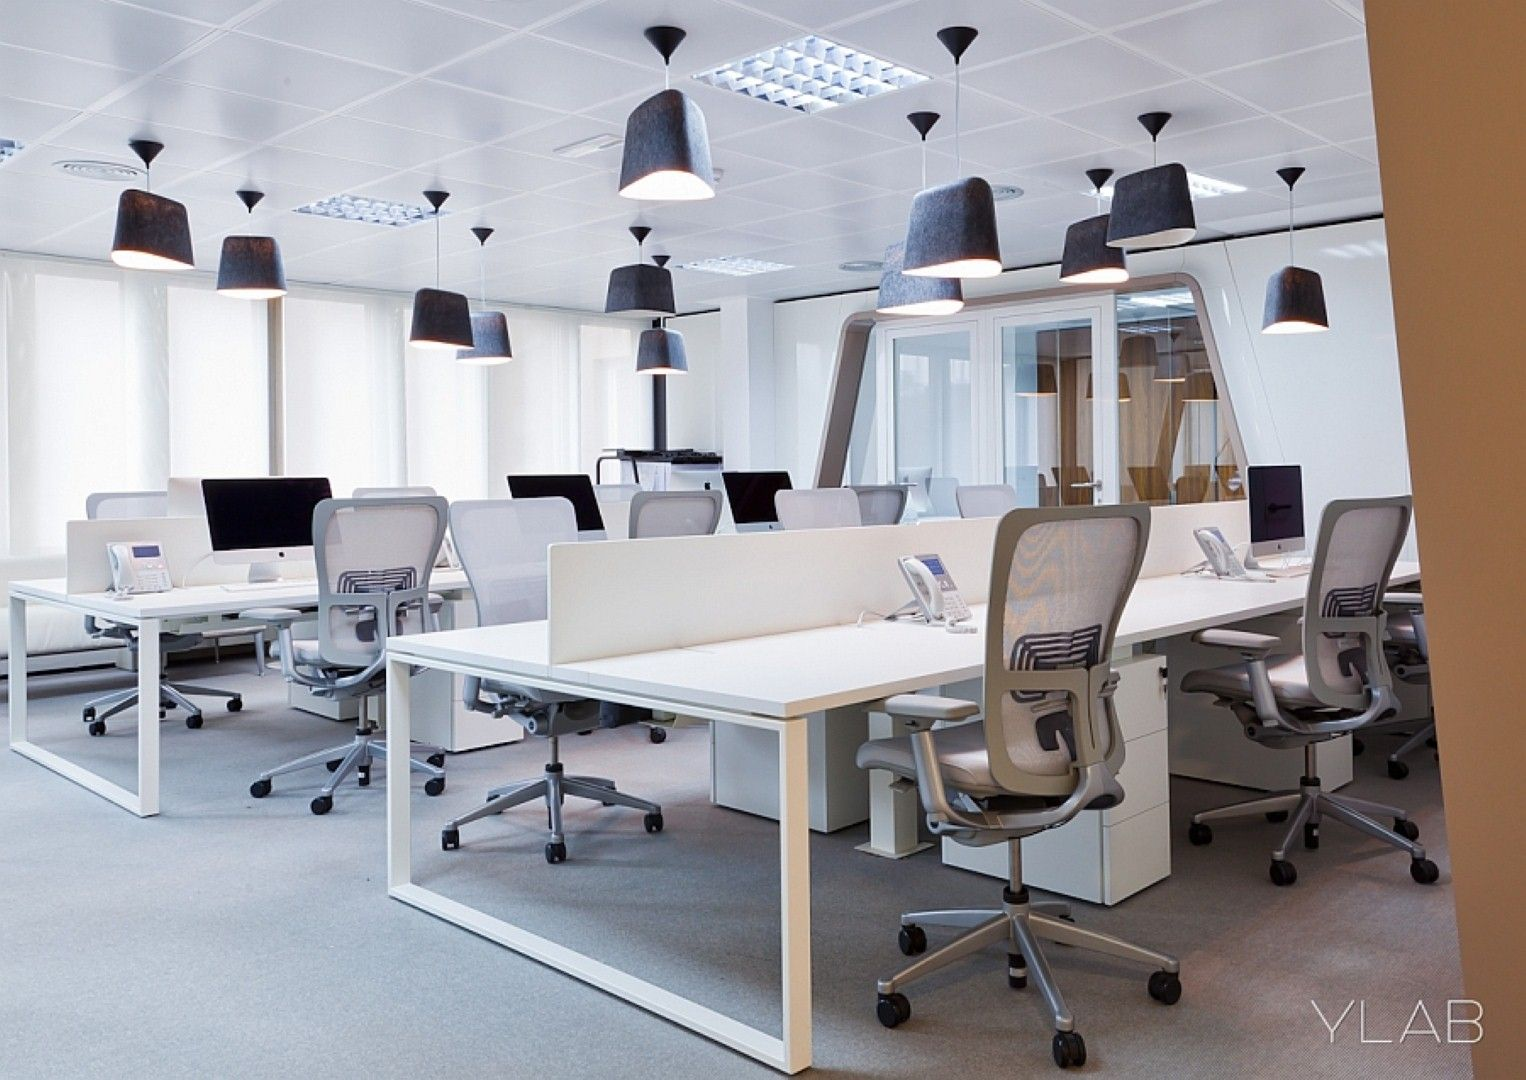 Contemporary Office Space Google Search Contemporary Office Space Contemporary Office Design Office Space Design